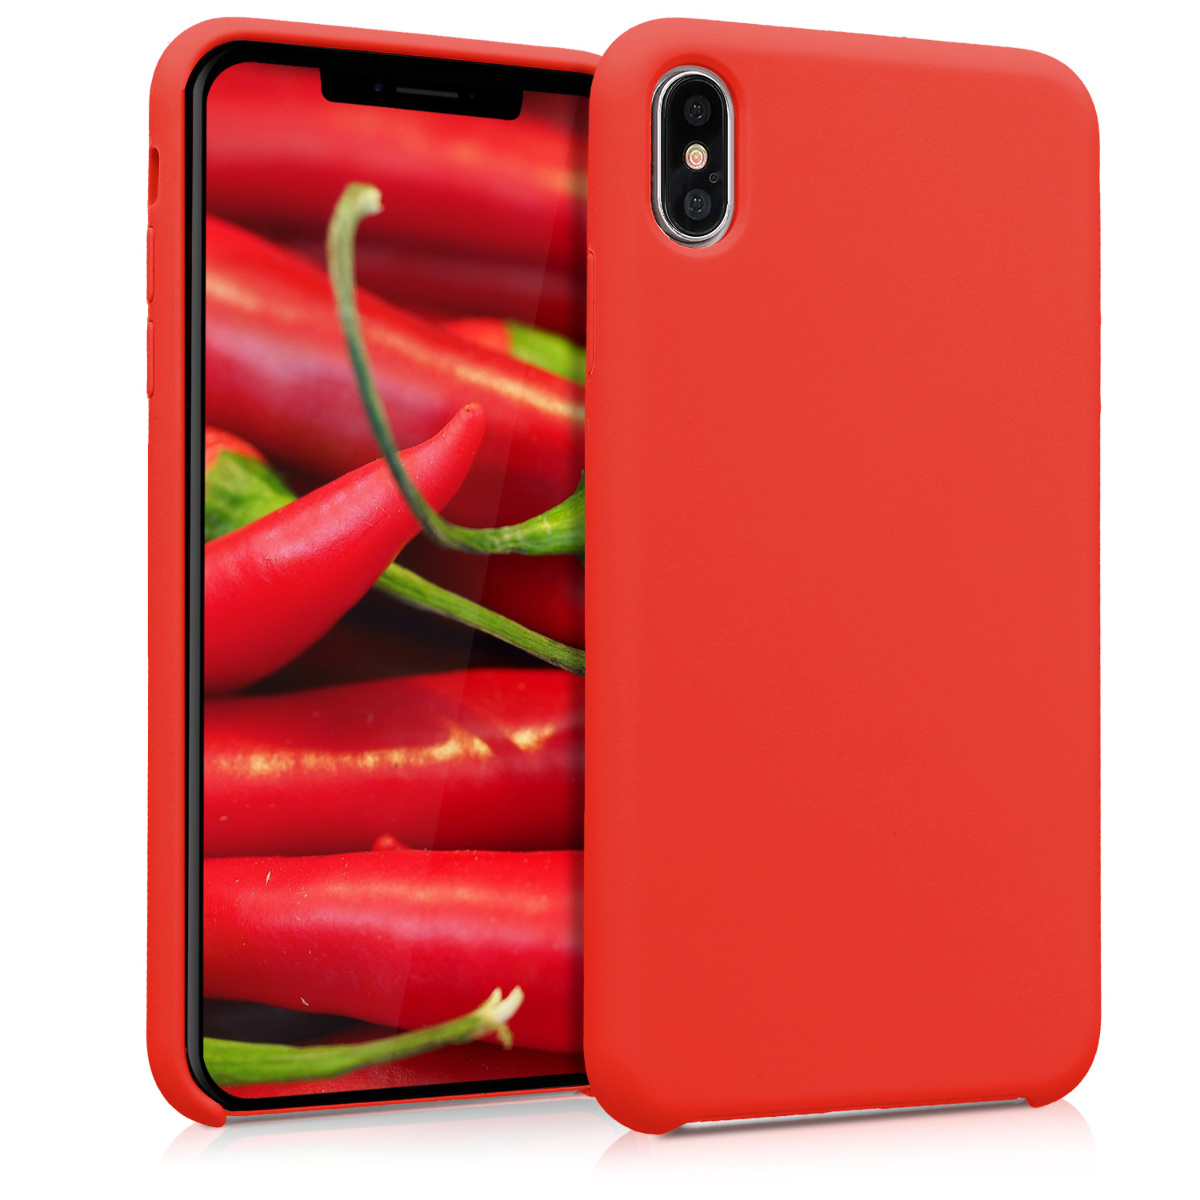 KW Soft Flexible Rubber Θήκη Σιλικόνης iPhone XS Max - Red (45909.09)